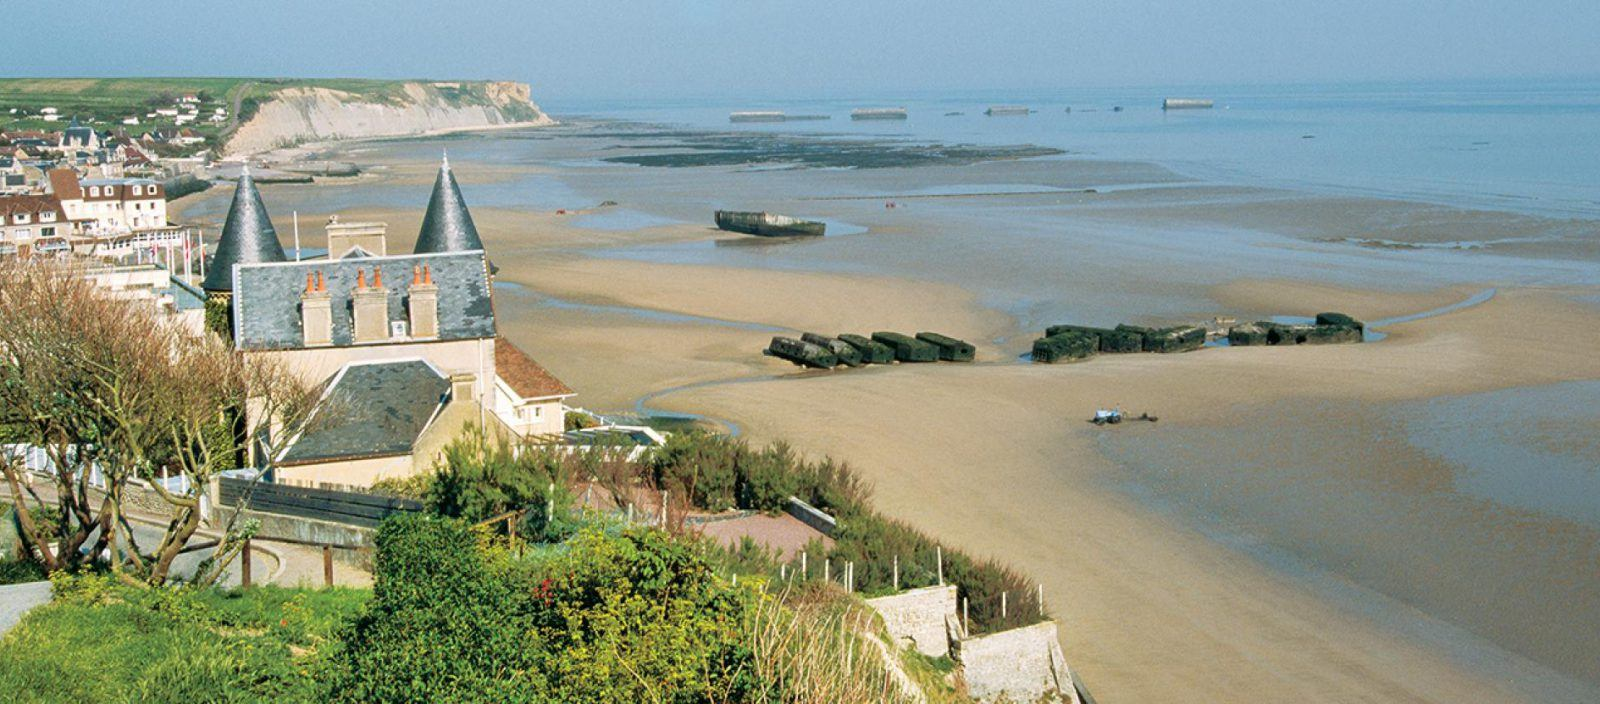 D-Day's 75th Anniversary: London to the Normandy Beaches